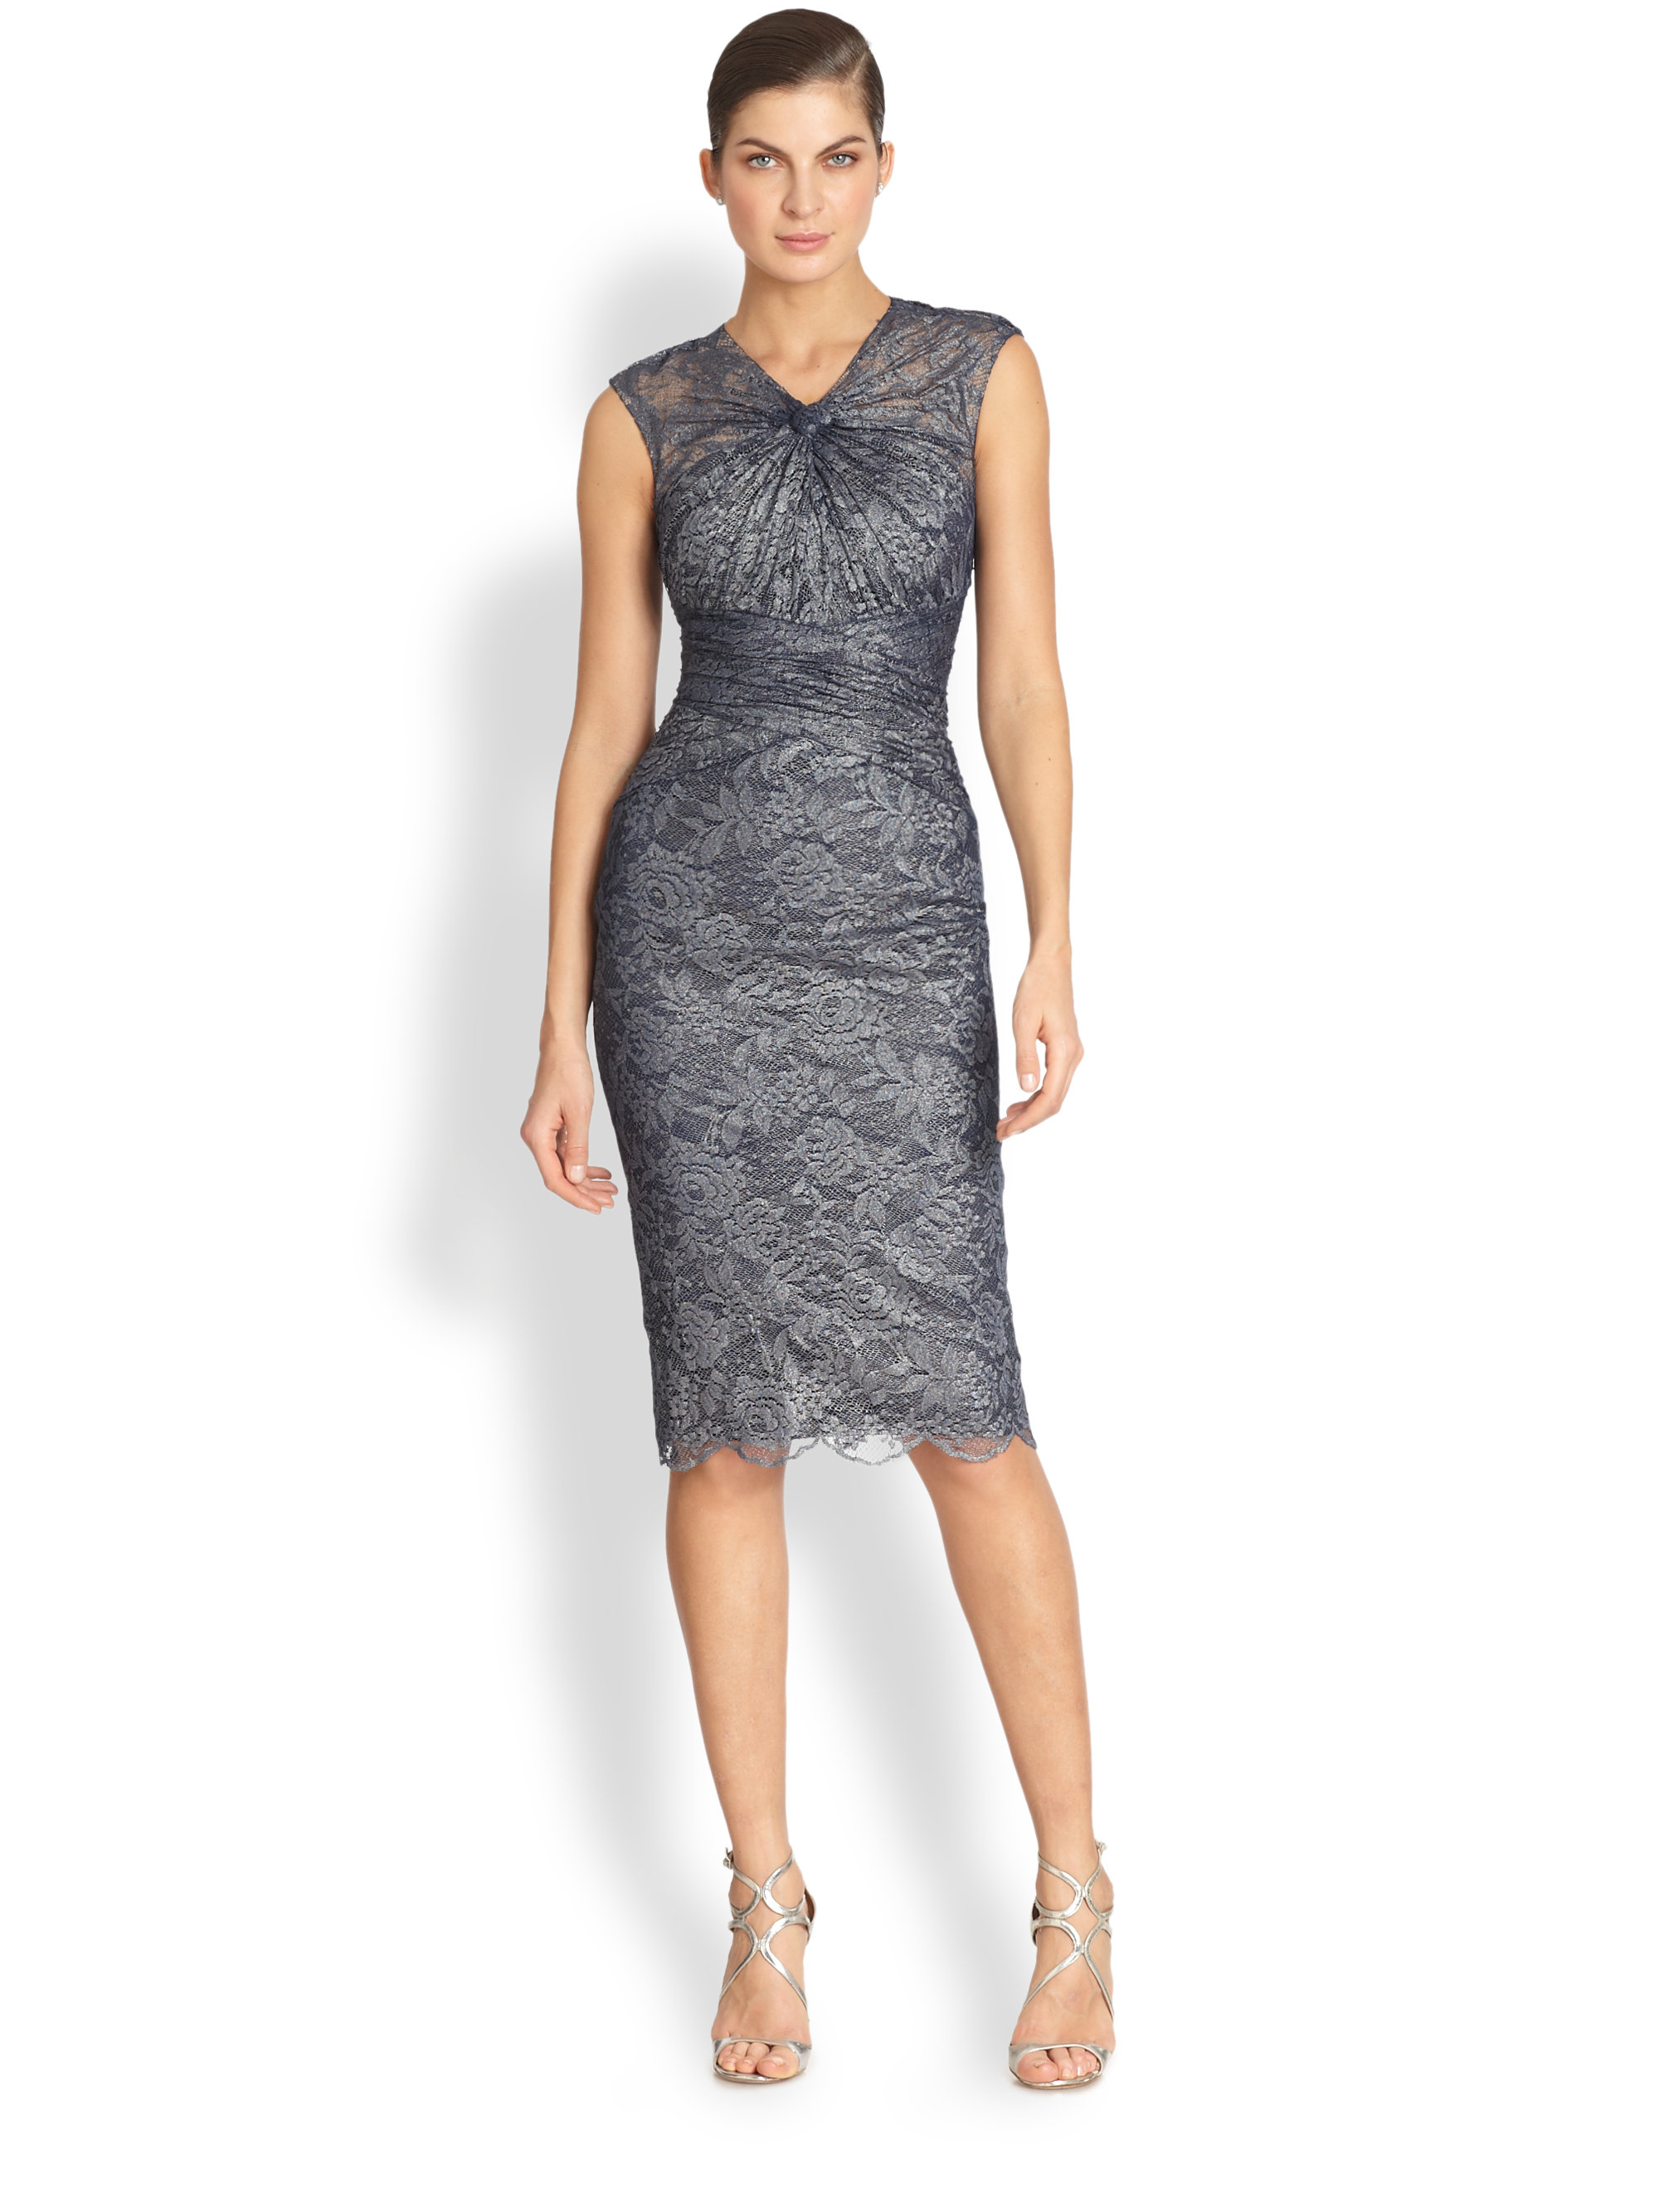 Badgley mischka Gathered Lace Cocktail Dress in Blue | Lyst